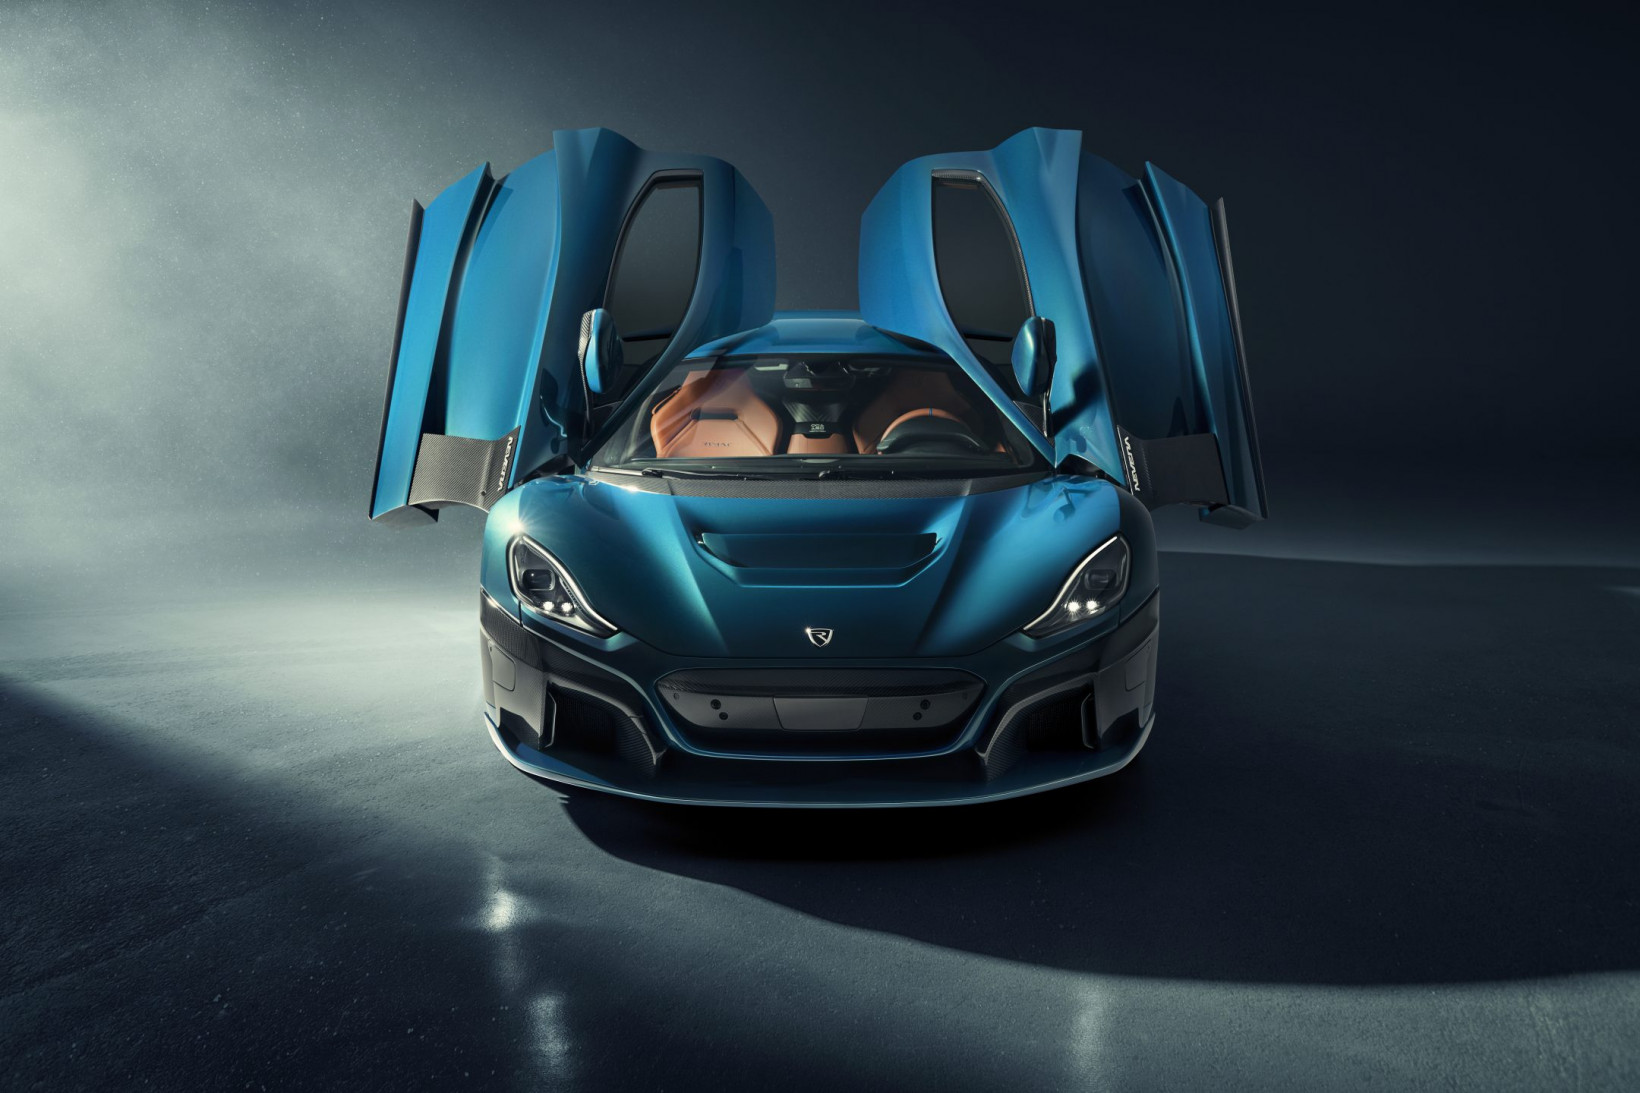 The vehicle's design aims to combine the drama and beauty of a hypercar